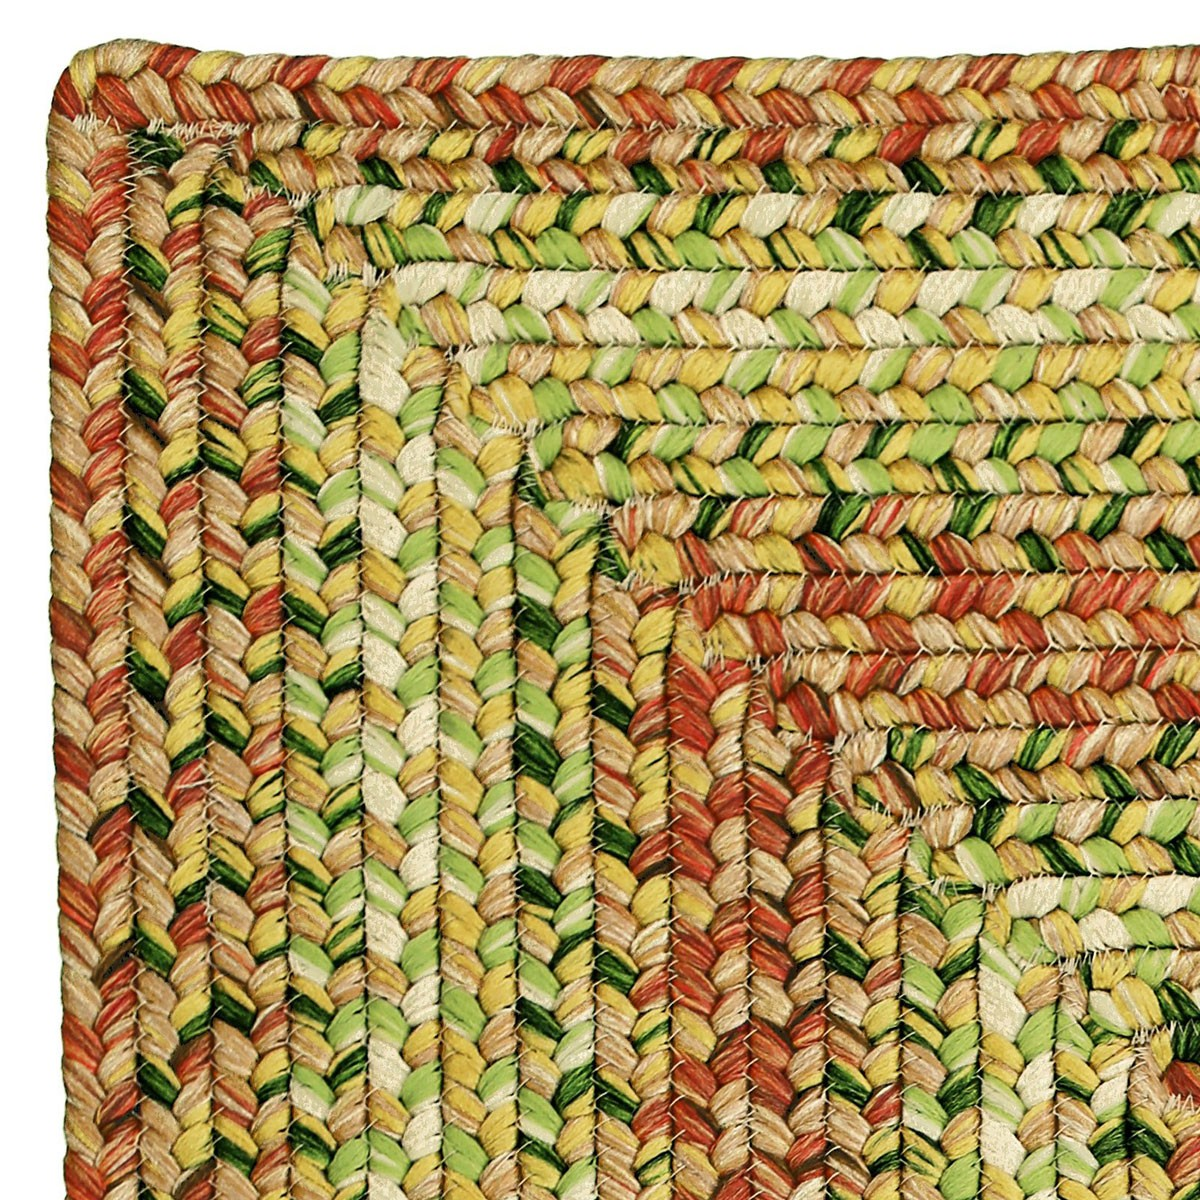 Hooked Chair Pads Home / Rugs / Coastal Braids / Tuscany Outdoor Braided Rugs